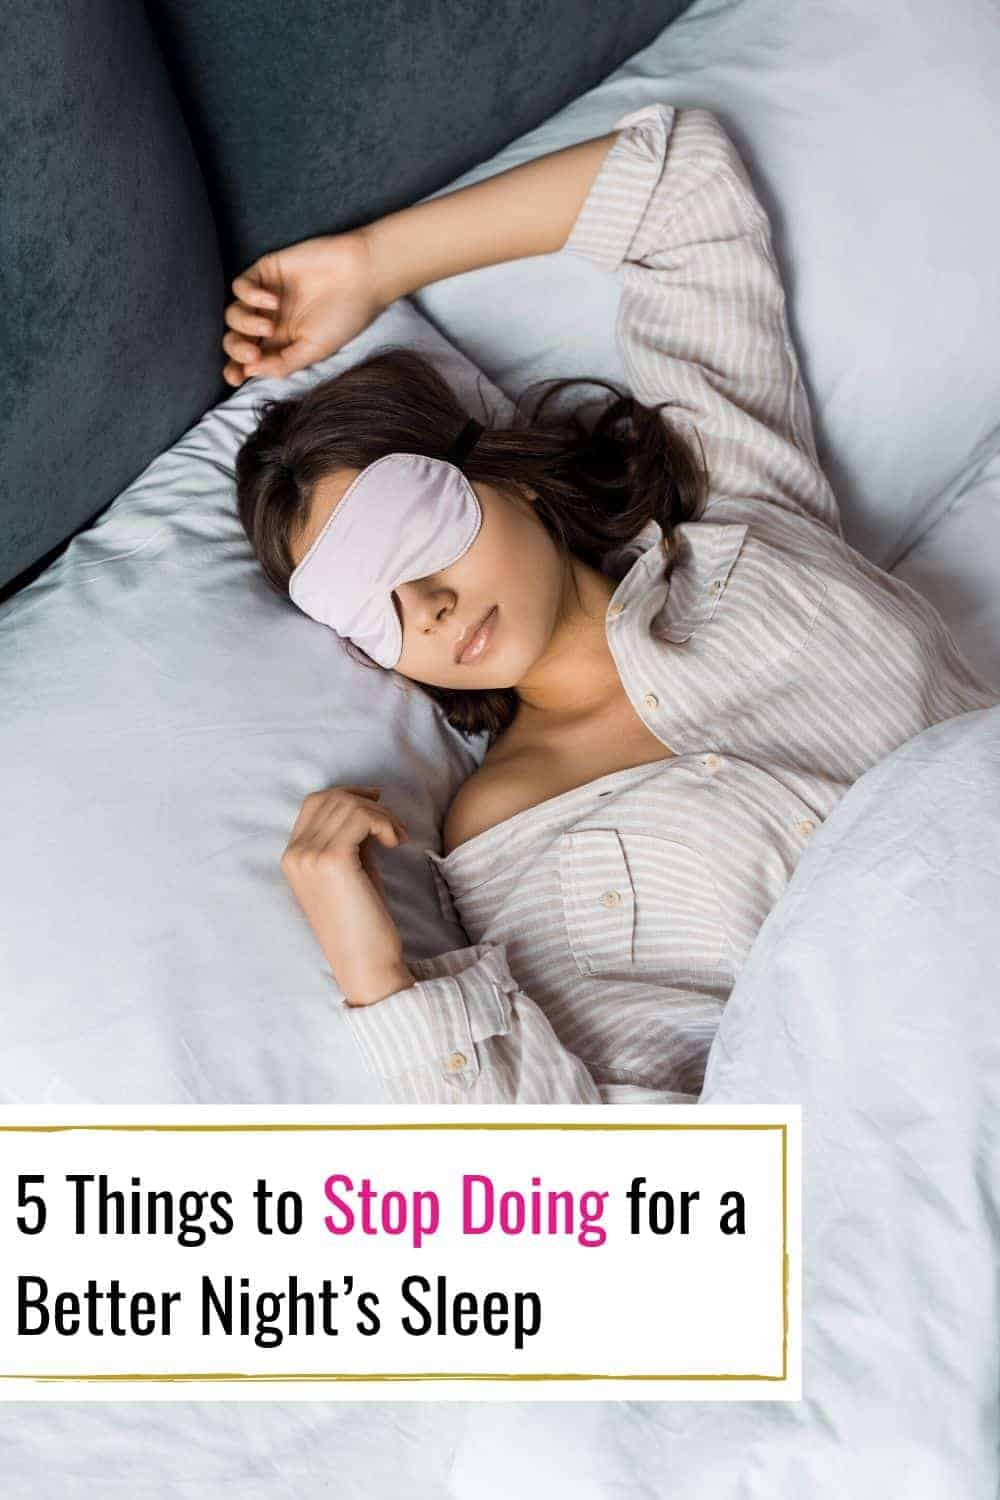 5 Things to Stop Doing for a Better Night's Sleep